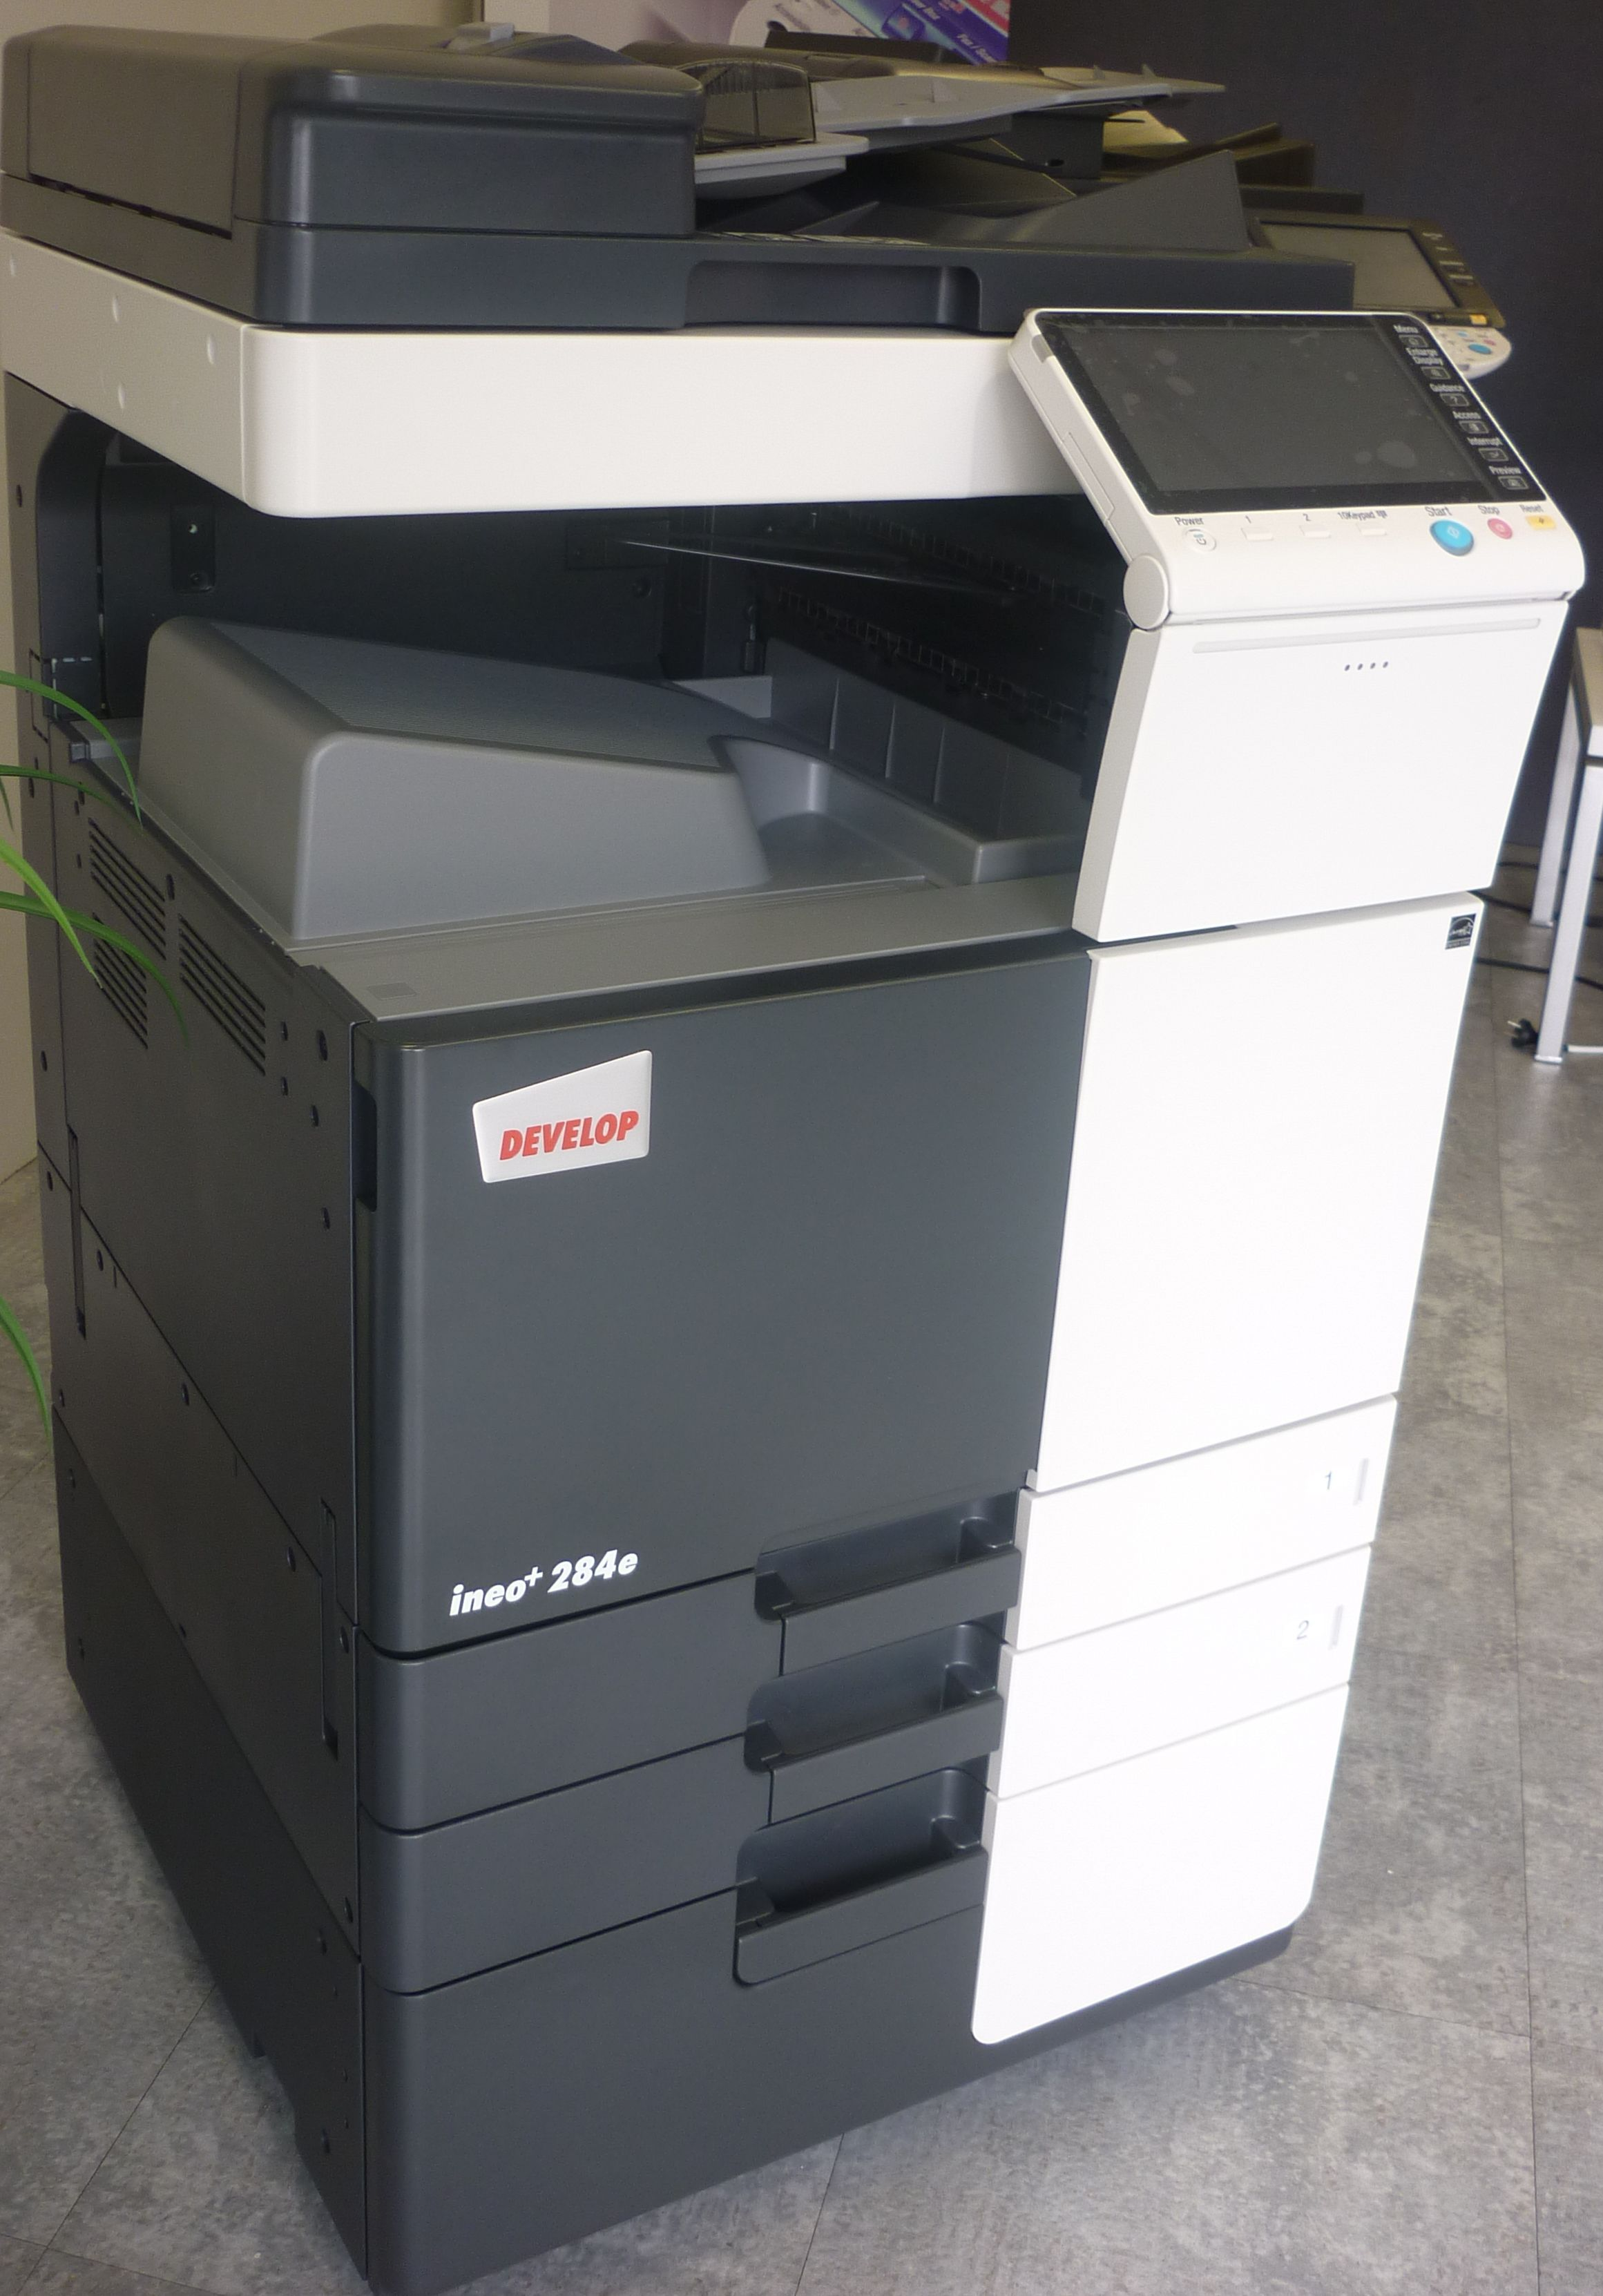 DRIVERS DEVELOP INEO 160 PRINTER